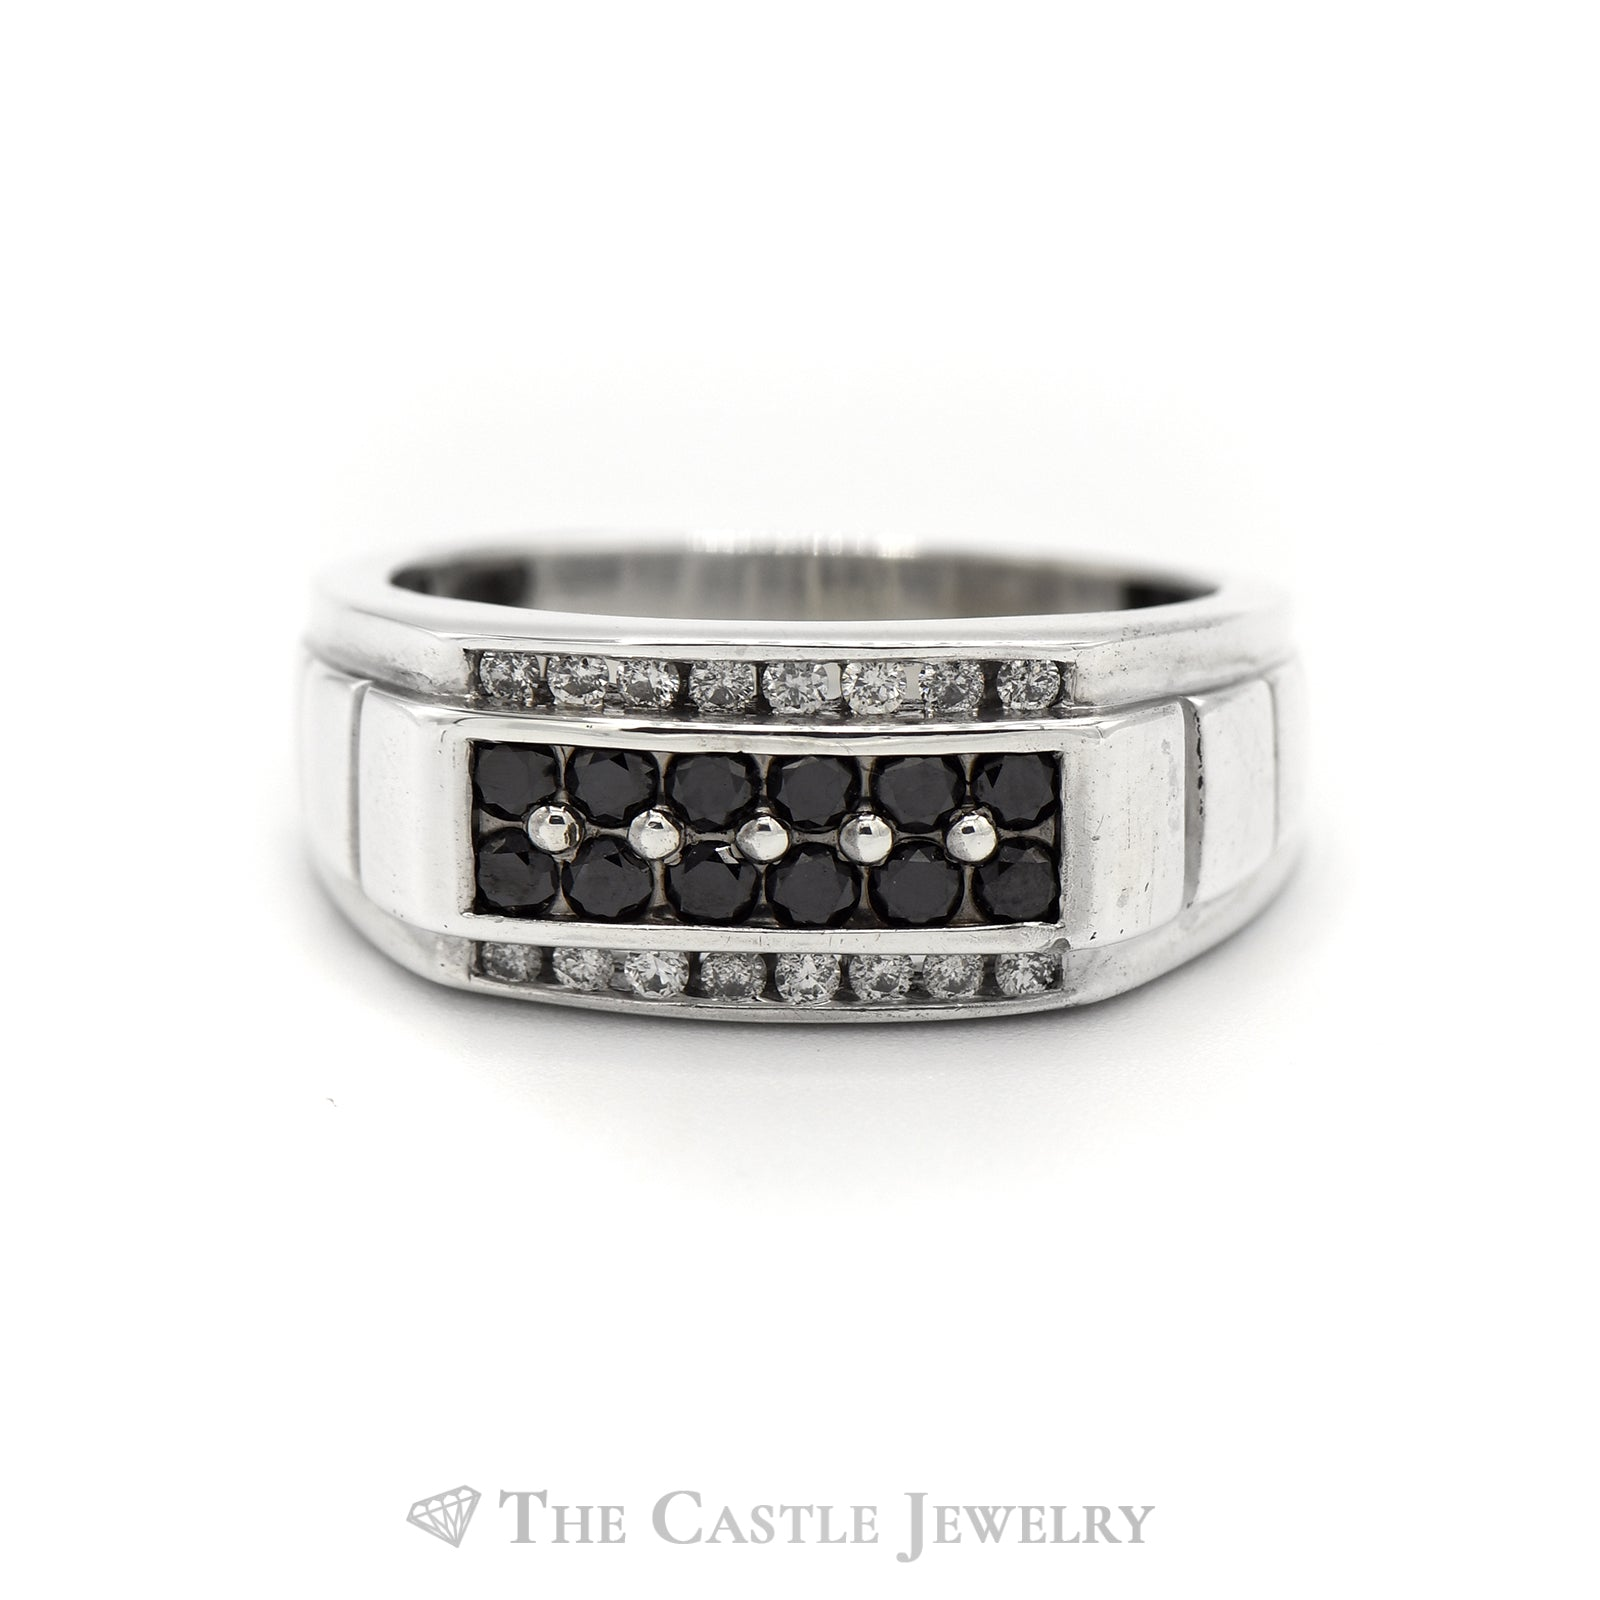 Men's 1cttw Black & White Diamond Ring in 10k White Gold